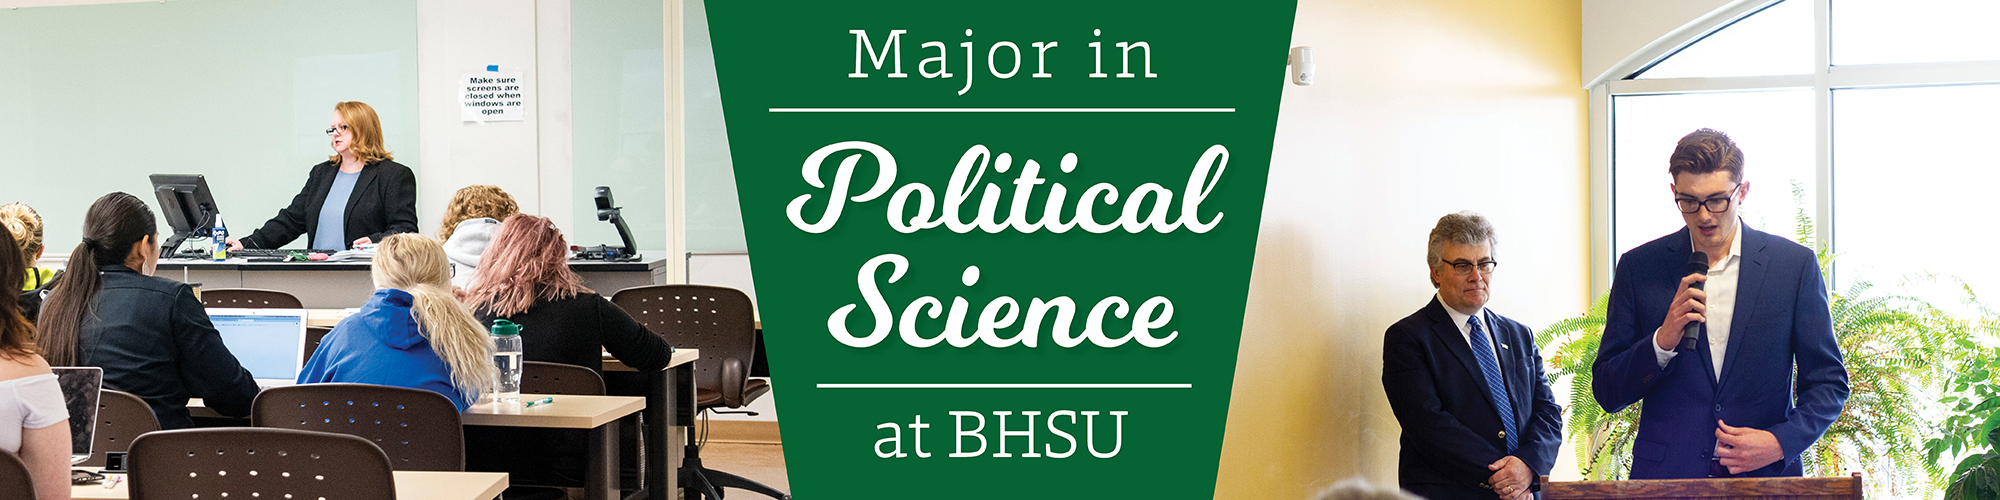 Discover Political Science Education at BHSU